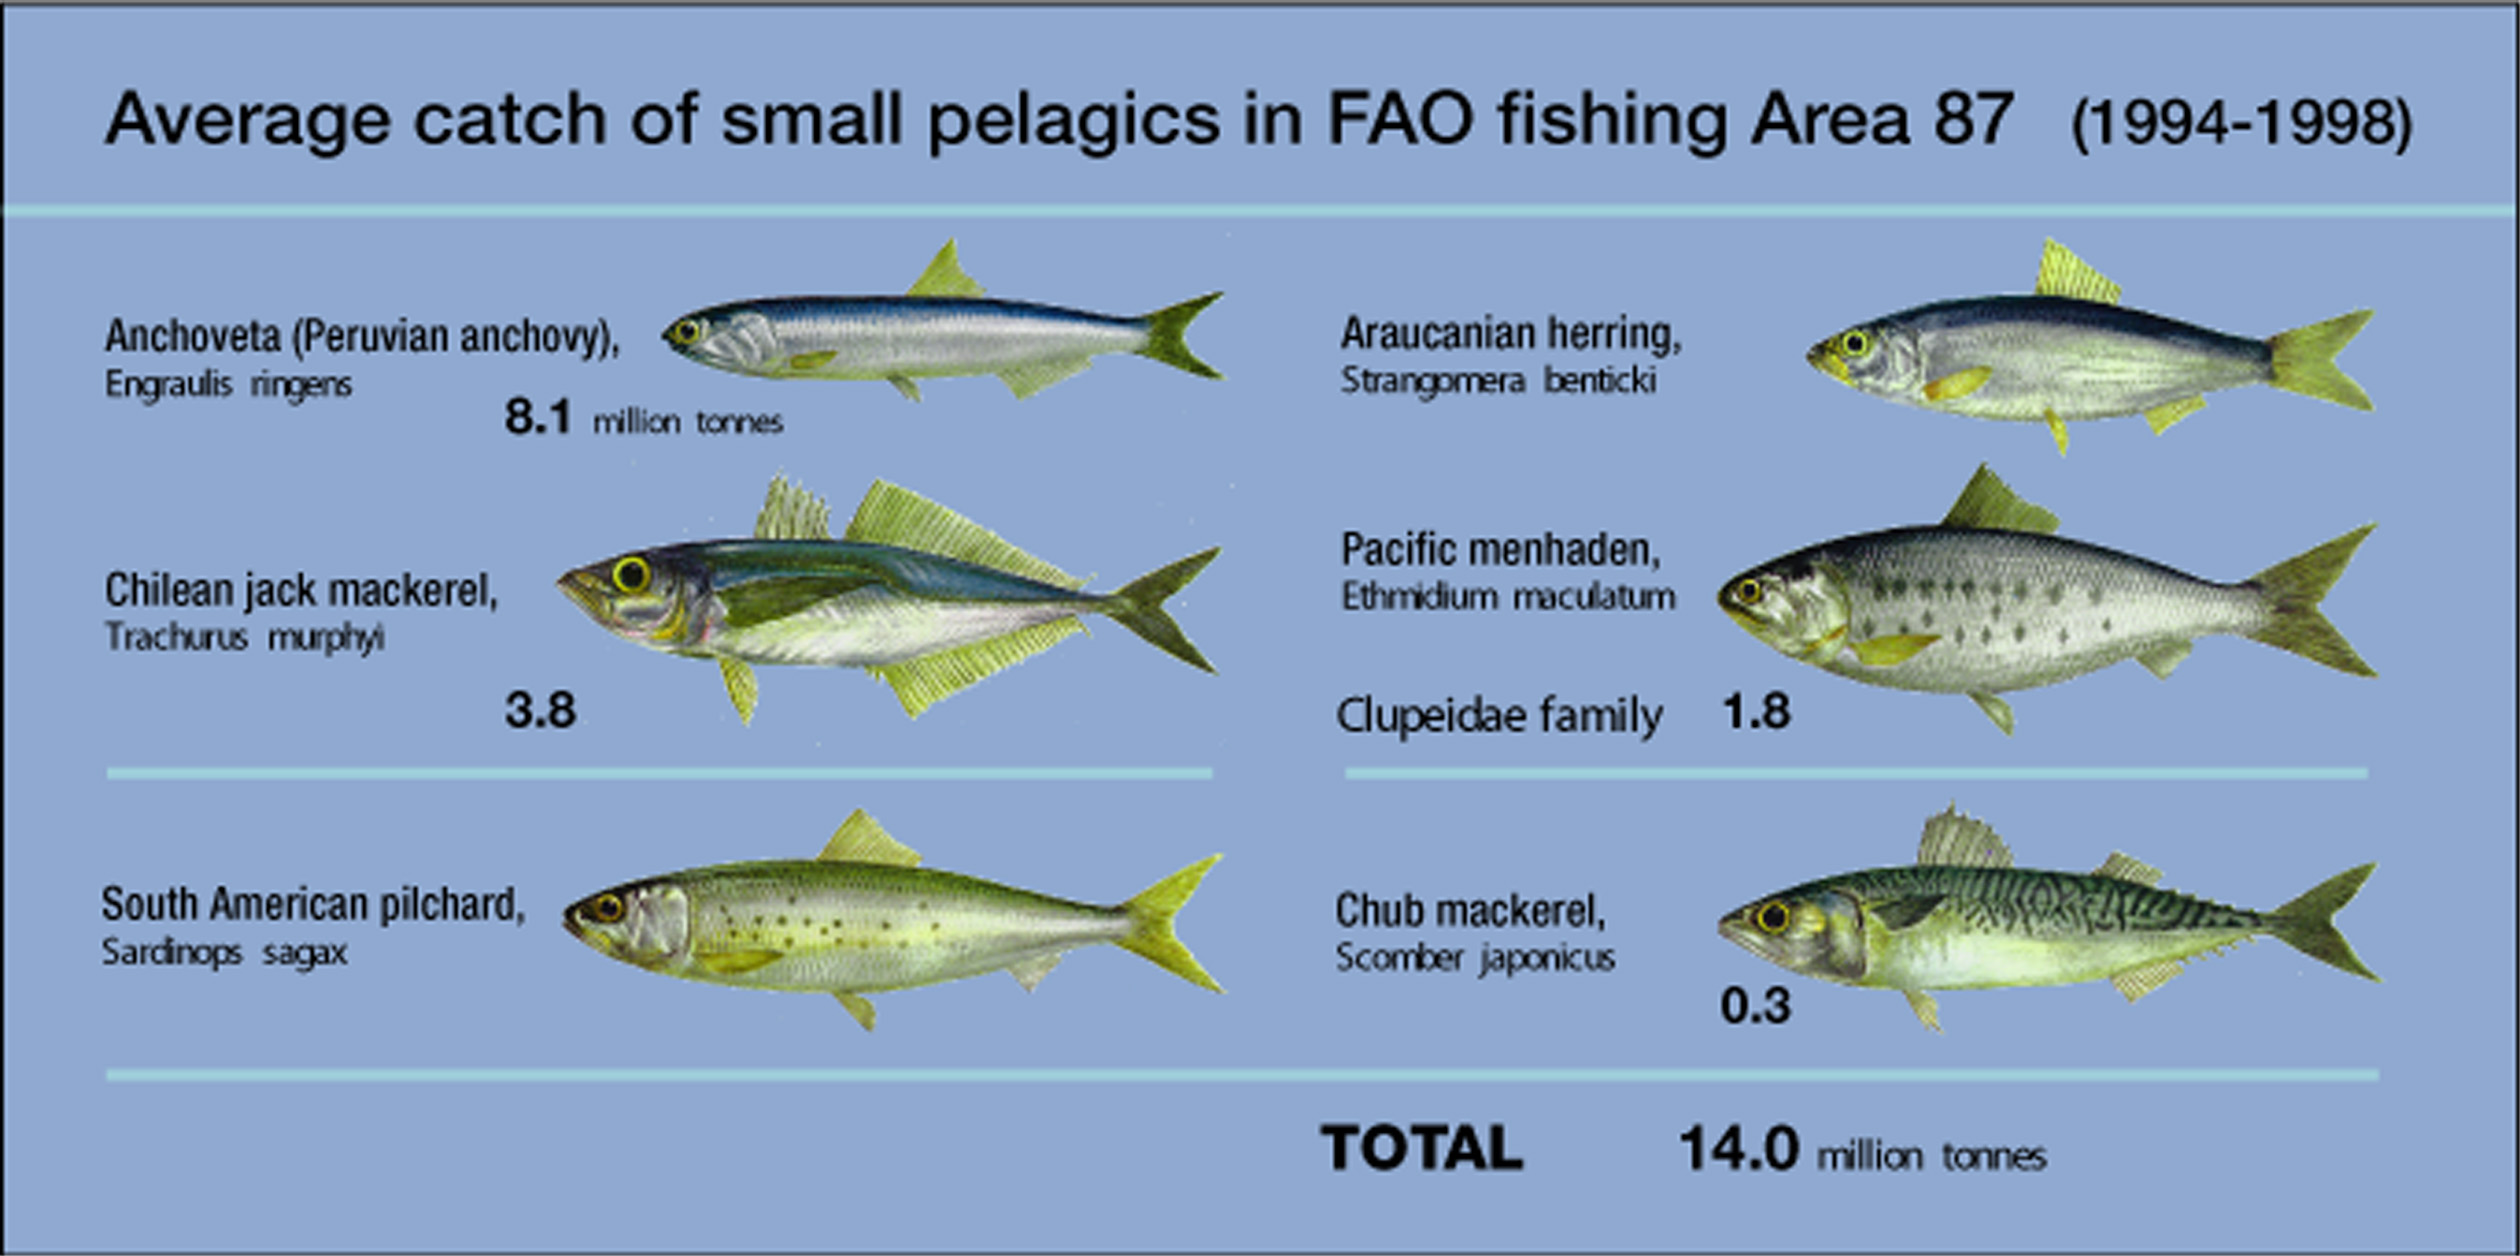 'Some of the species caught mainly for reduction to fishmeal and oil